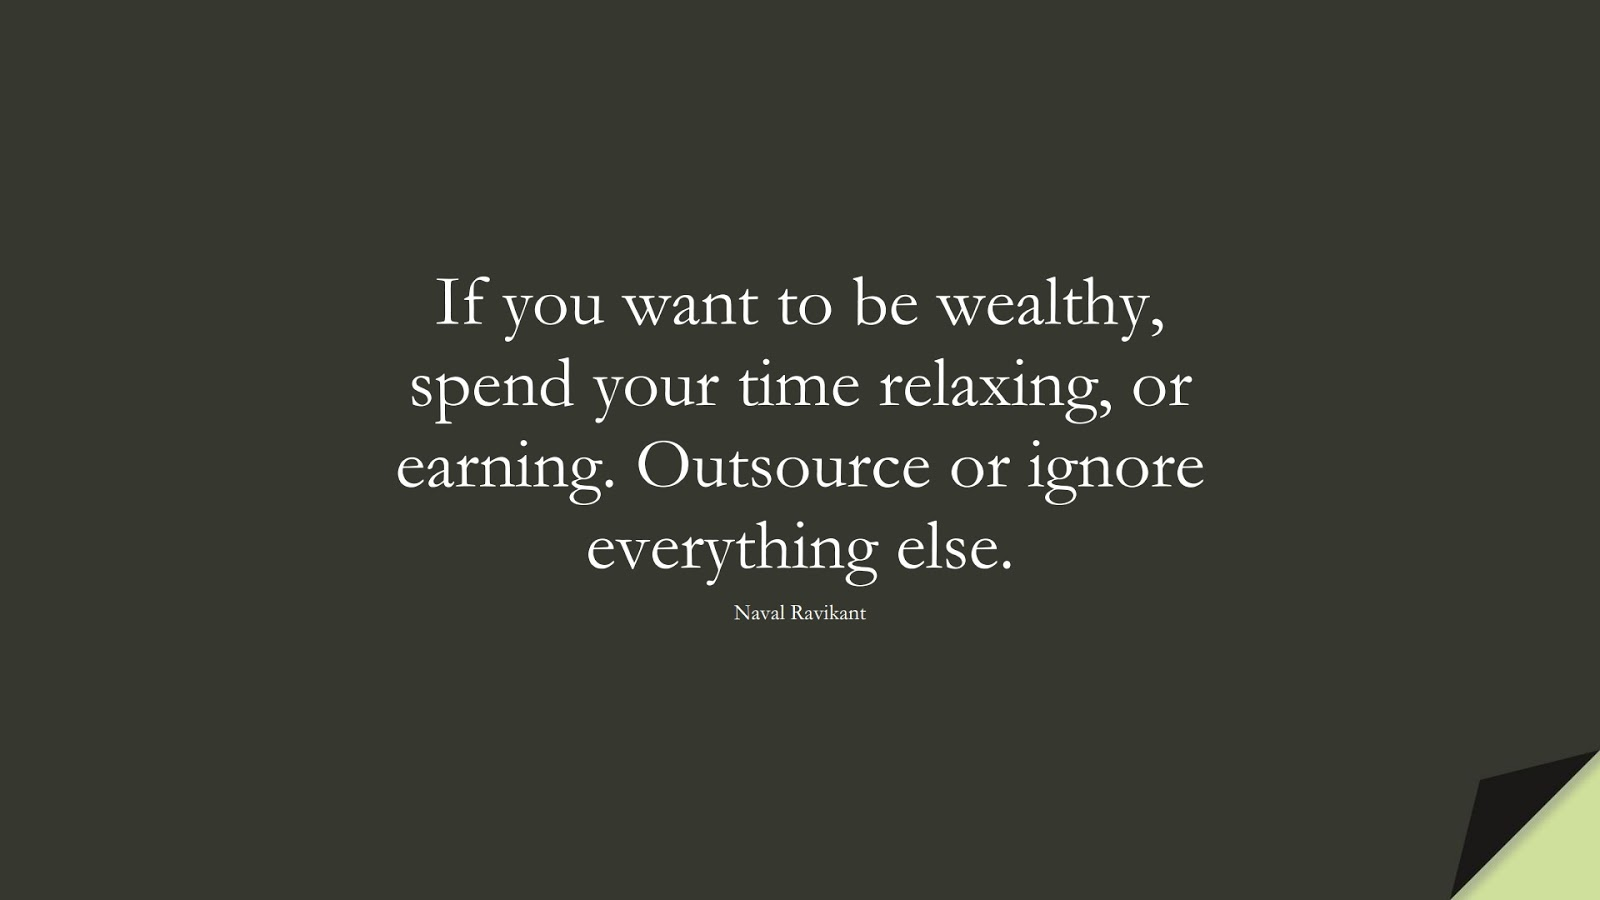 If you want to be wealthy, spend your time relaxing, or earning. Outsource or ignore everything else. (Naval Ravikant);  #MoneyQuotes